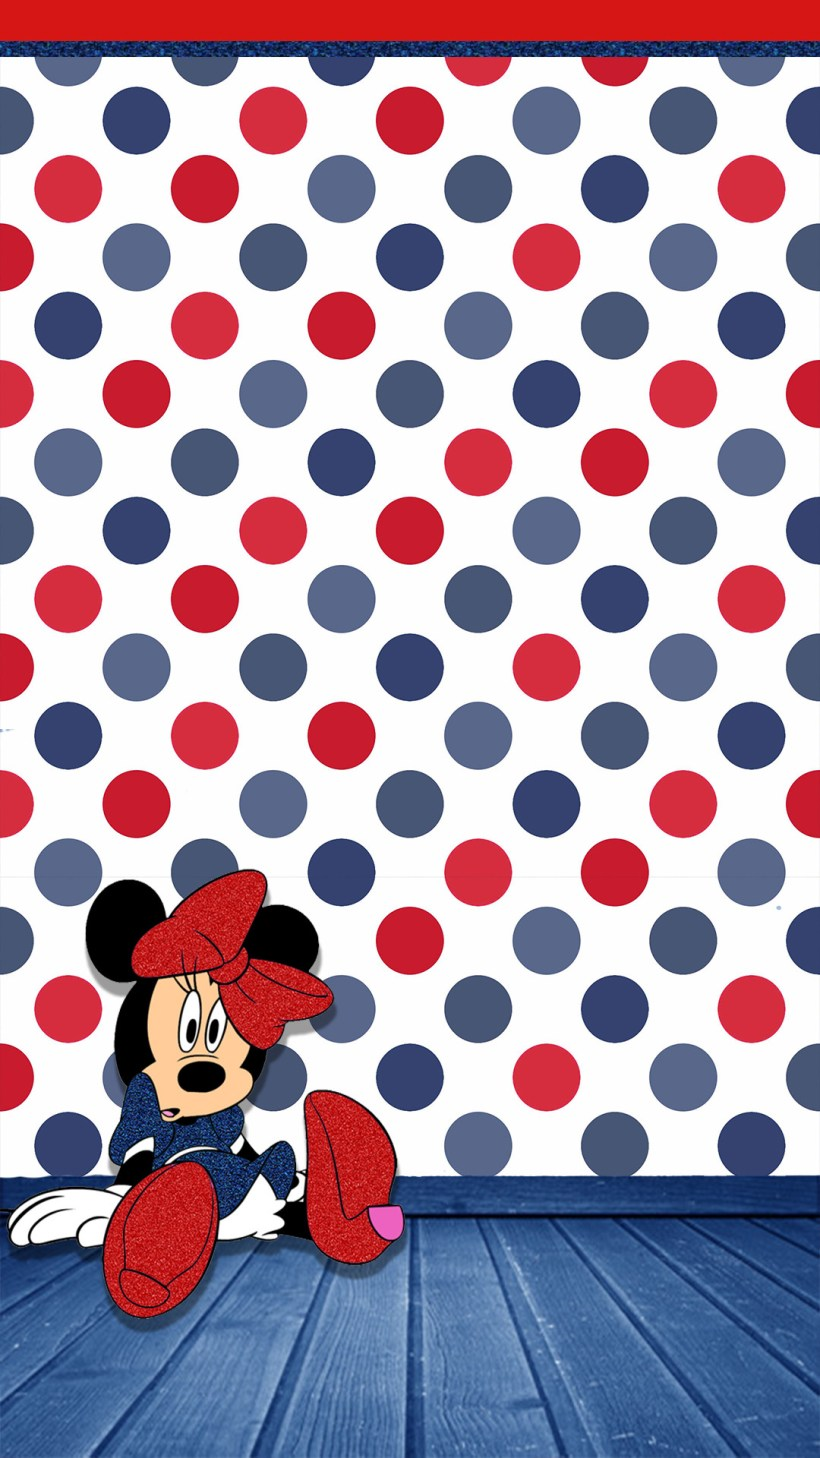 Wallpaper iphone minnie mouse - Minnie Mouse Wallpapers